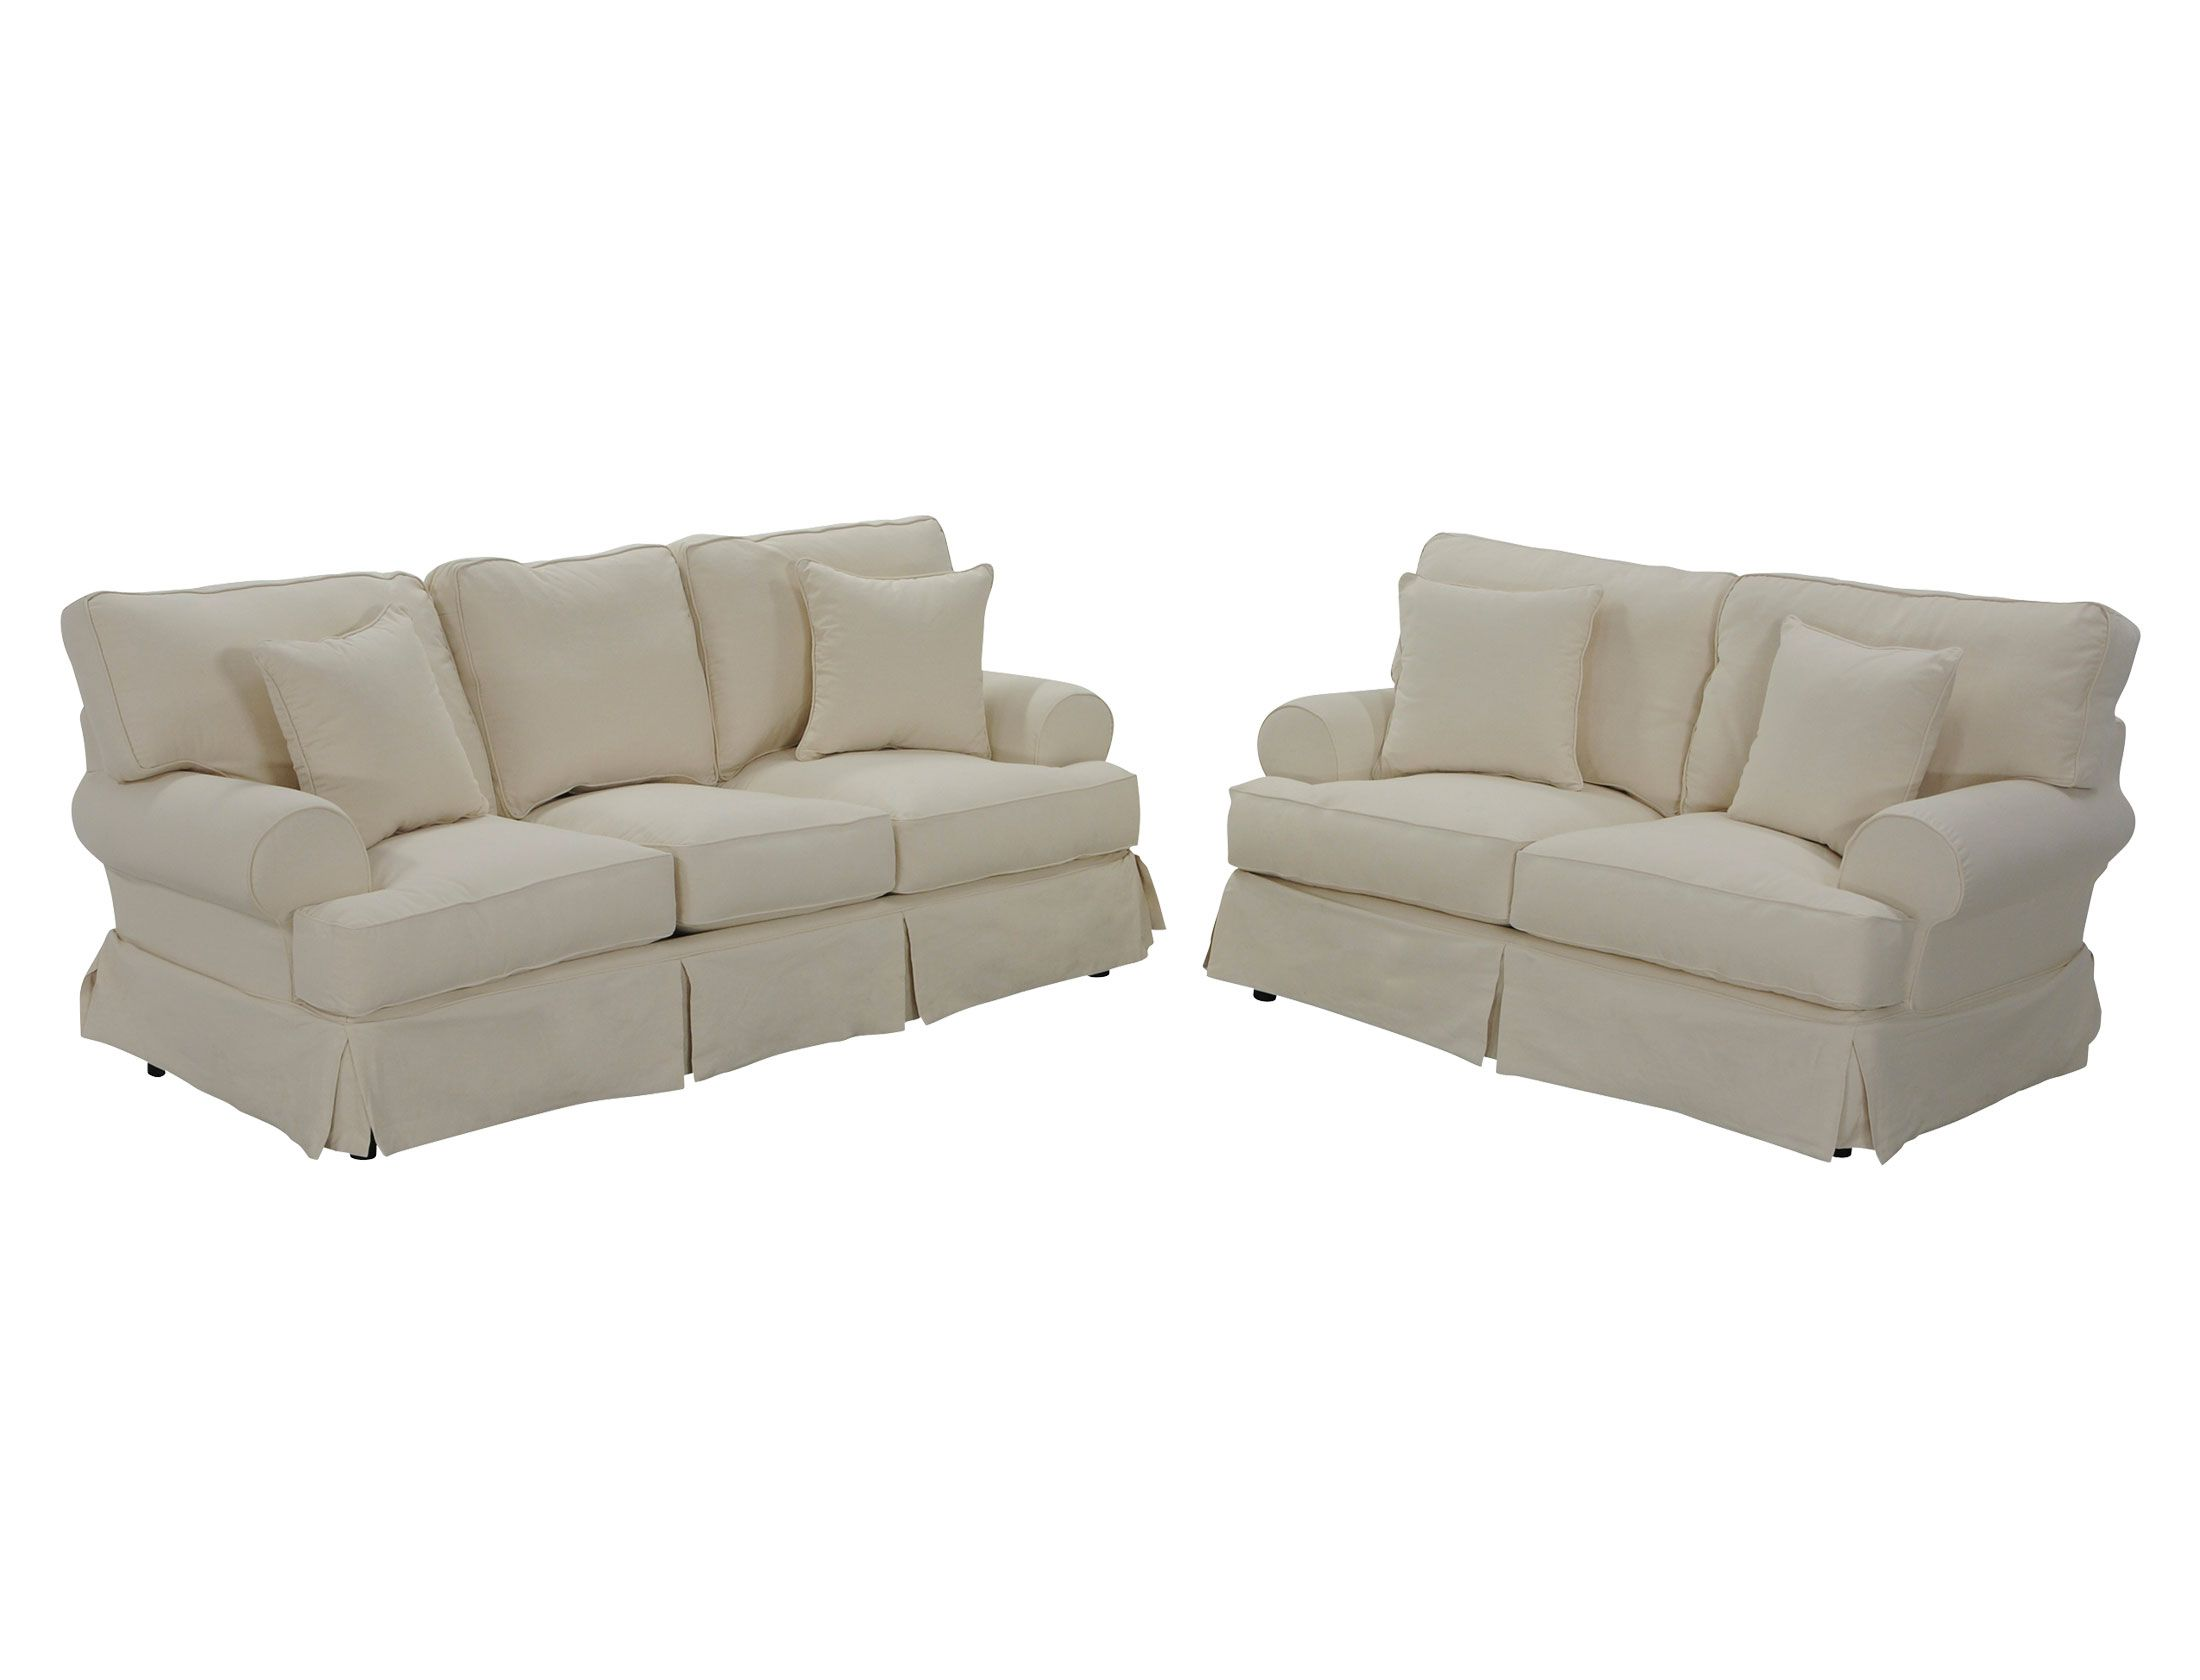 Classic slipcover sofa set Jerome s Furniture